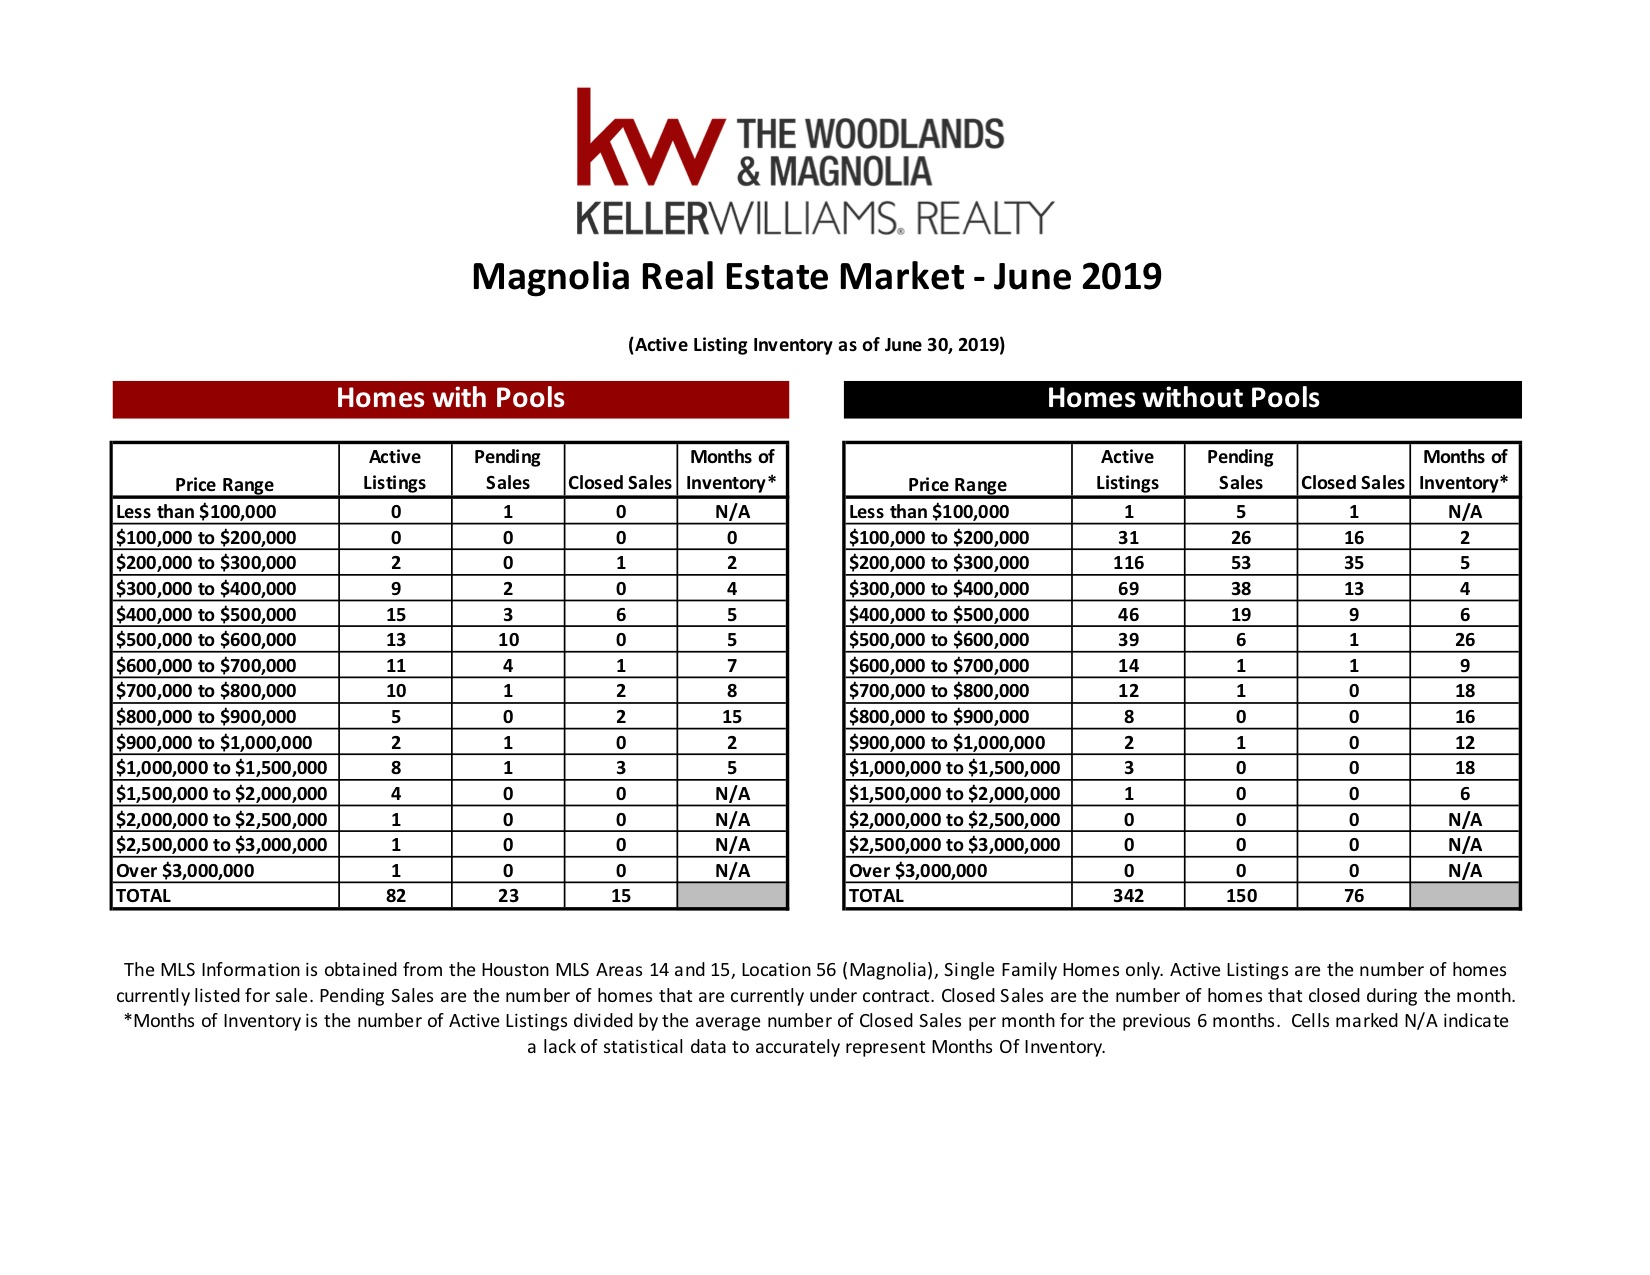 , June 2019 MarketWatch Report – Magnolia, KW Woodlands